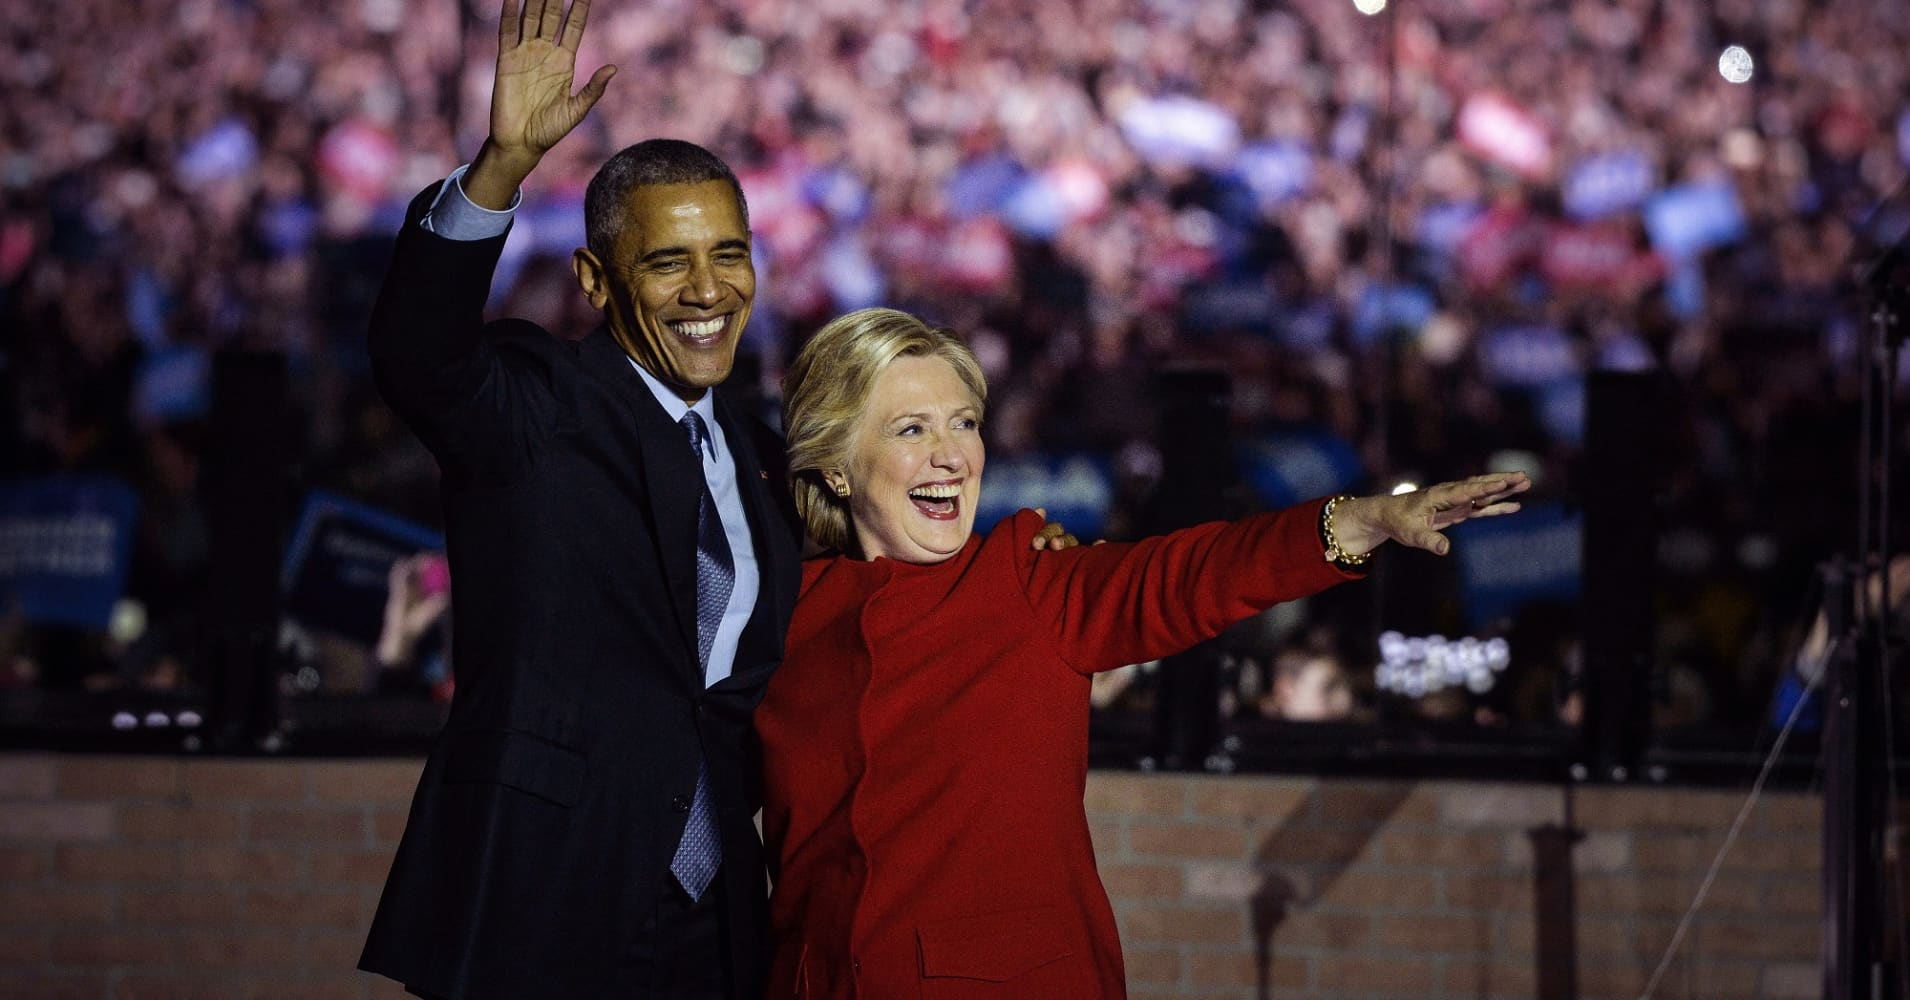 Hillary Clinton and Barack Obama wave to the crowd during a campaign event in Philadelphia, Pennsylvania.